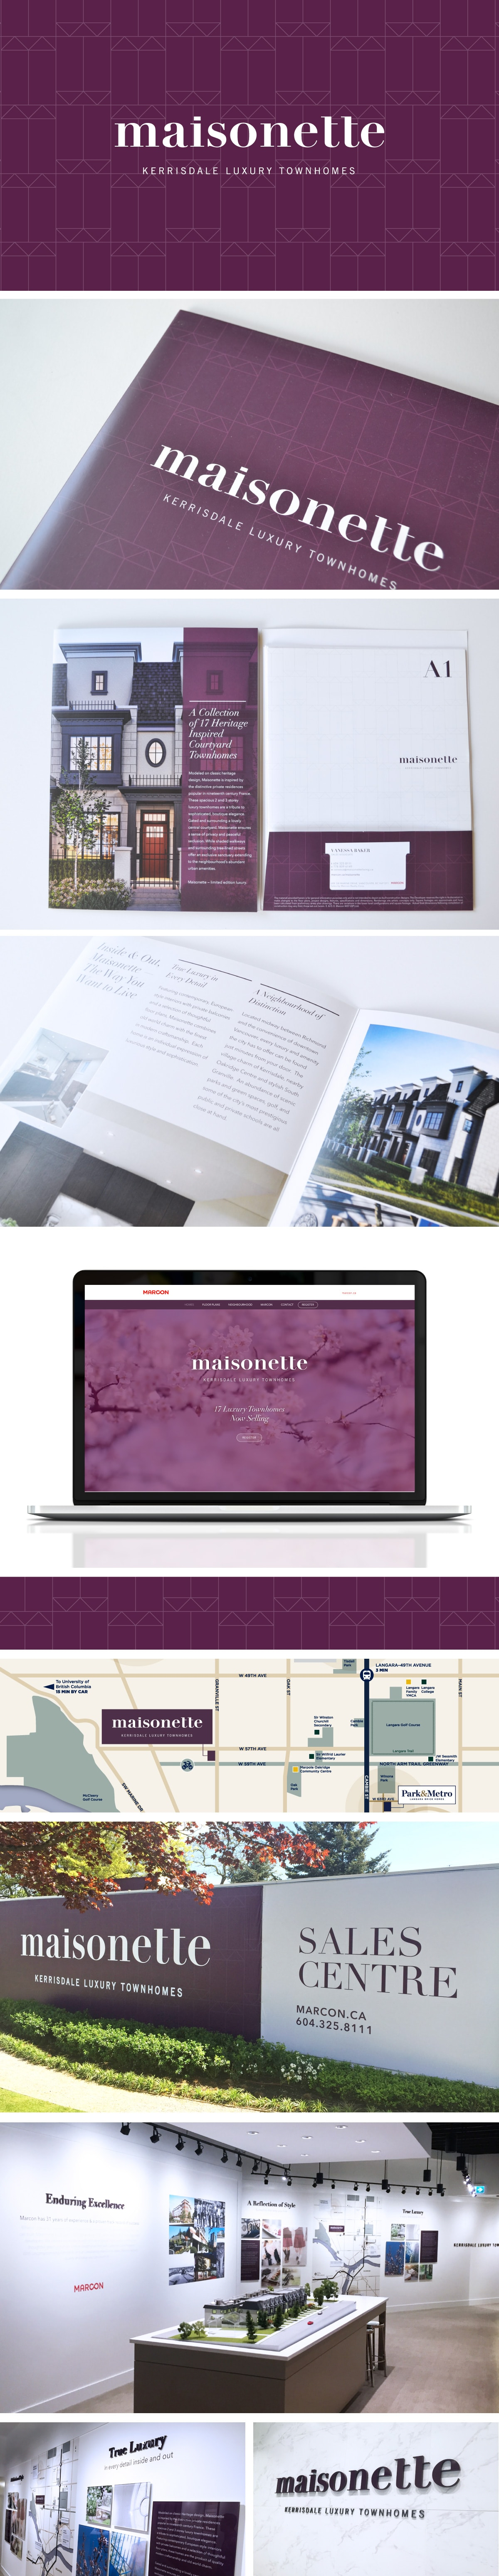 maisonette graphic design portfolio